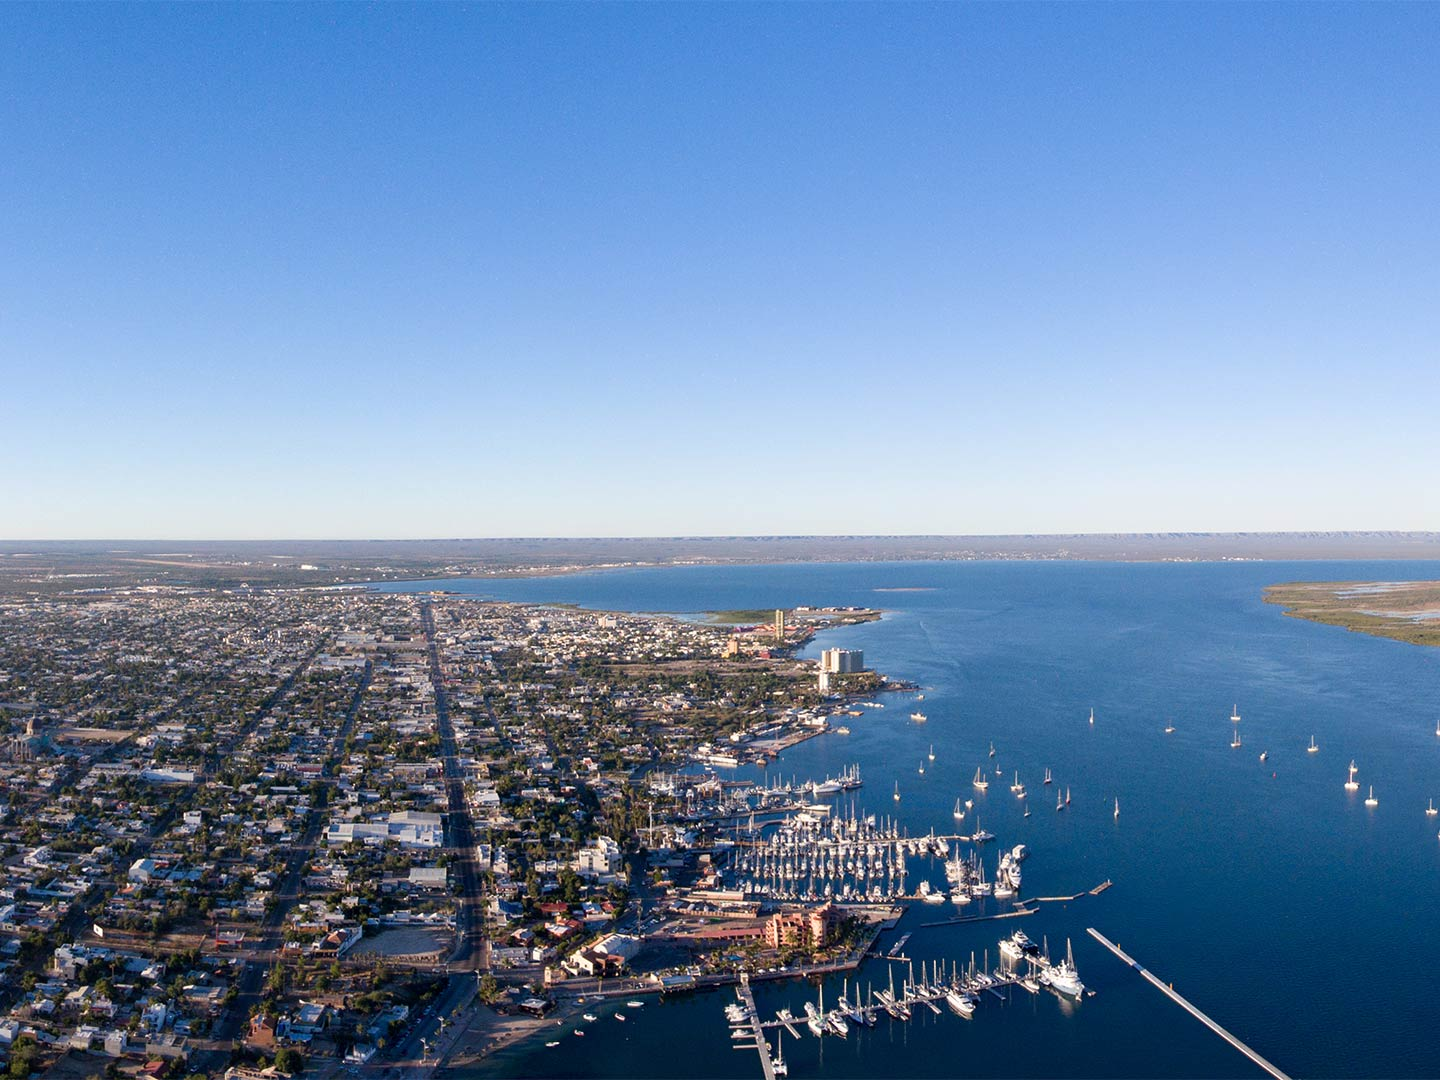 An aerial view of the city of La Paz and the bay in Baja California Sur